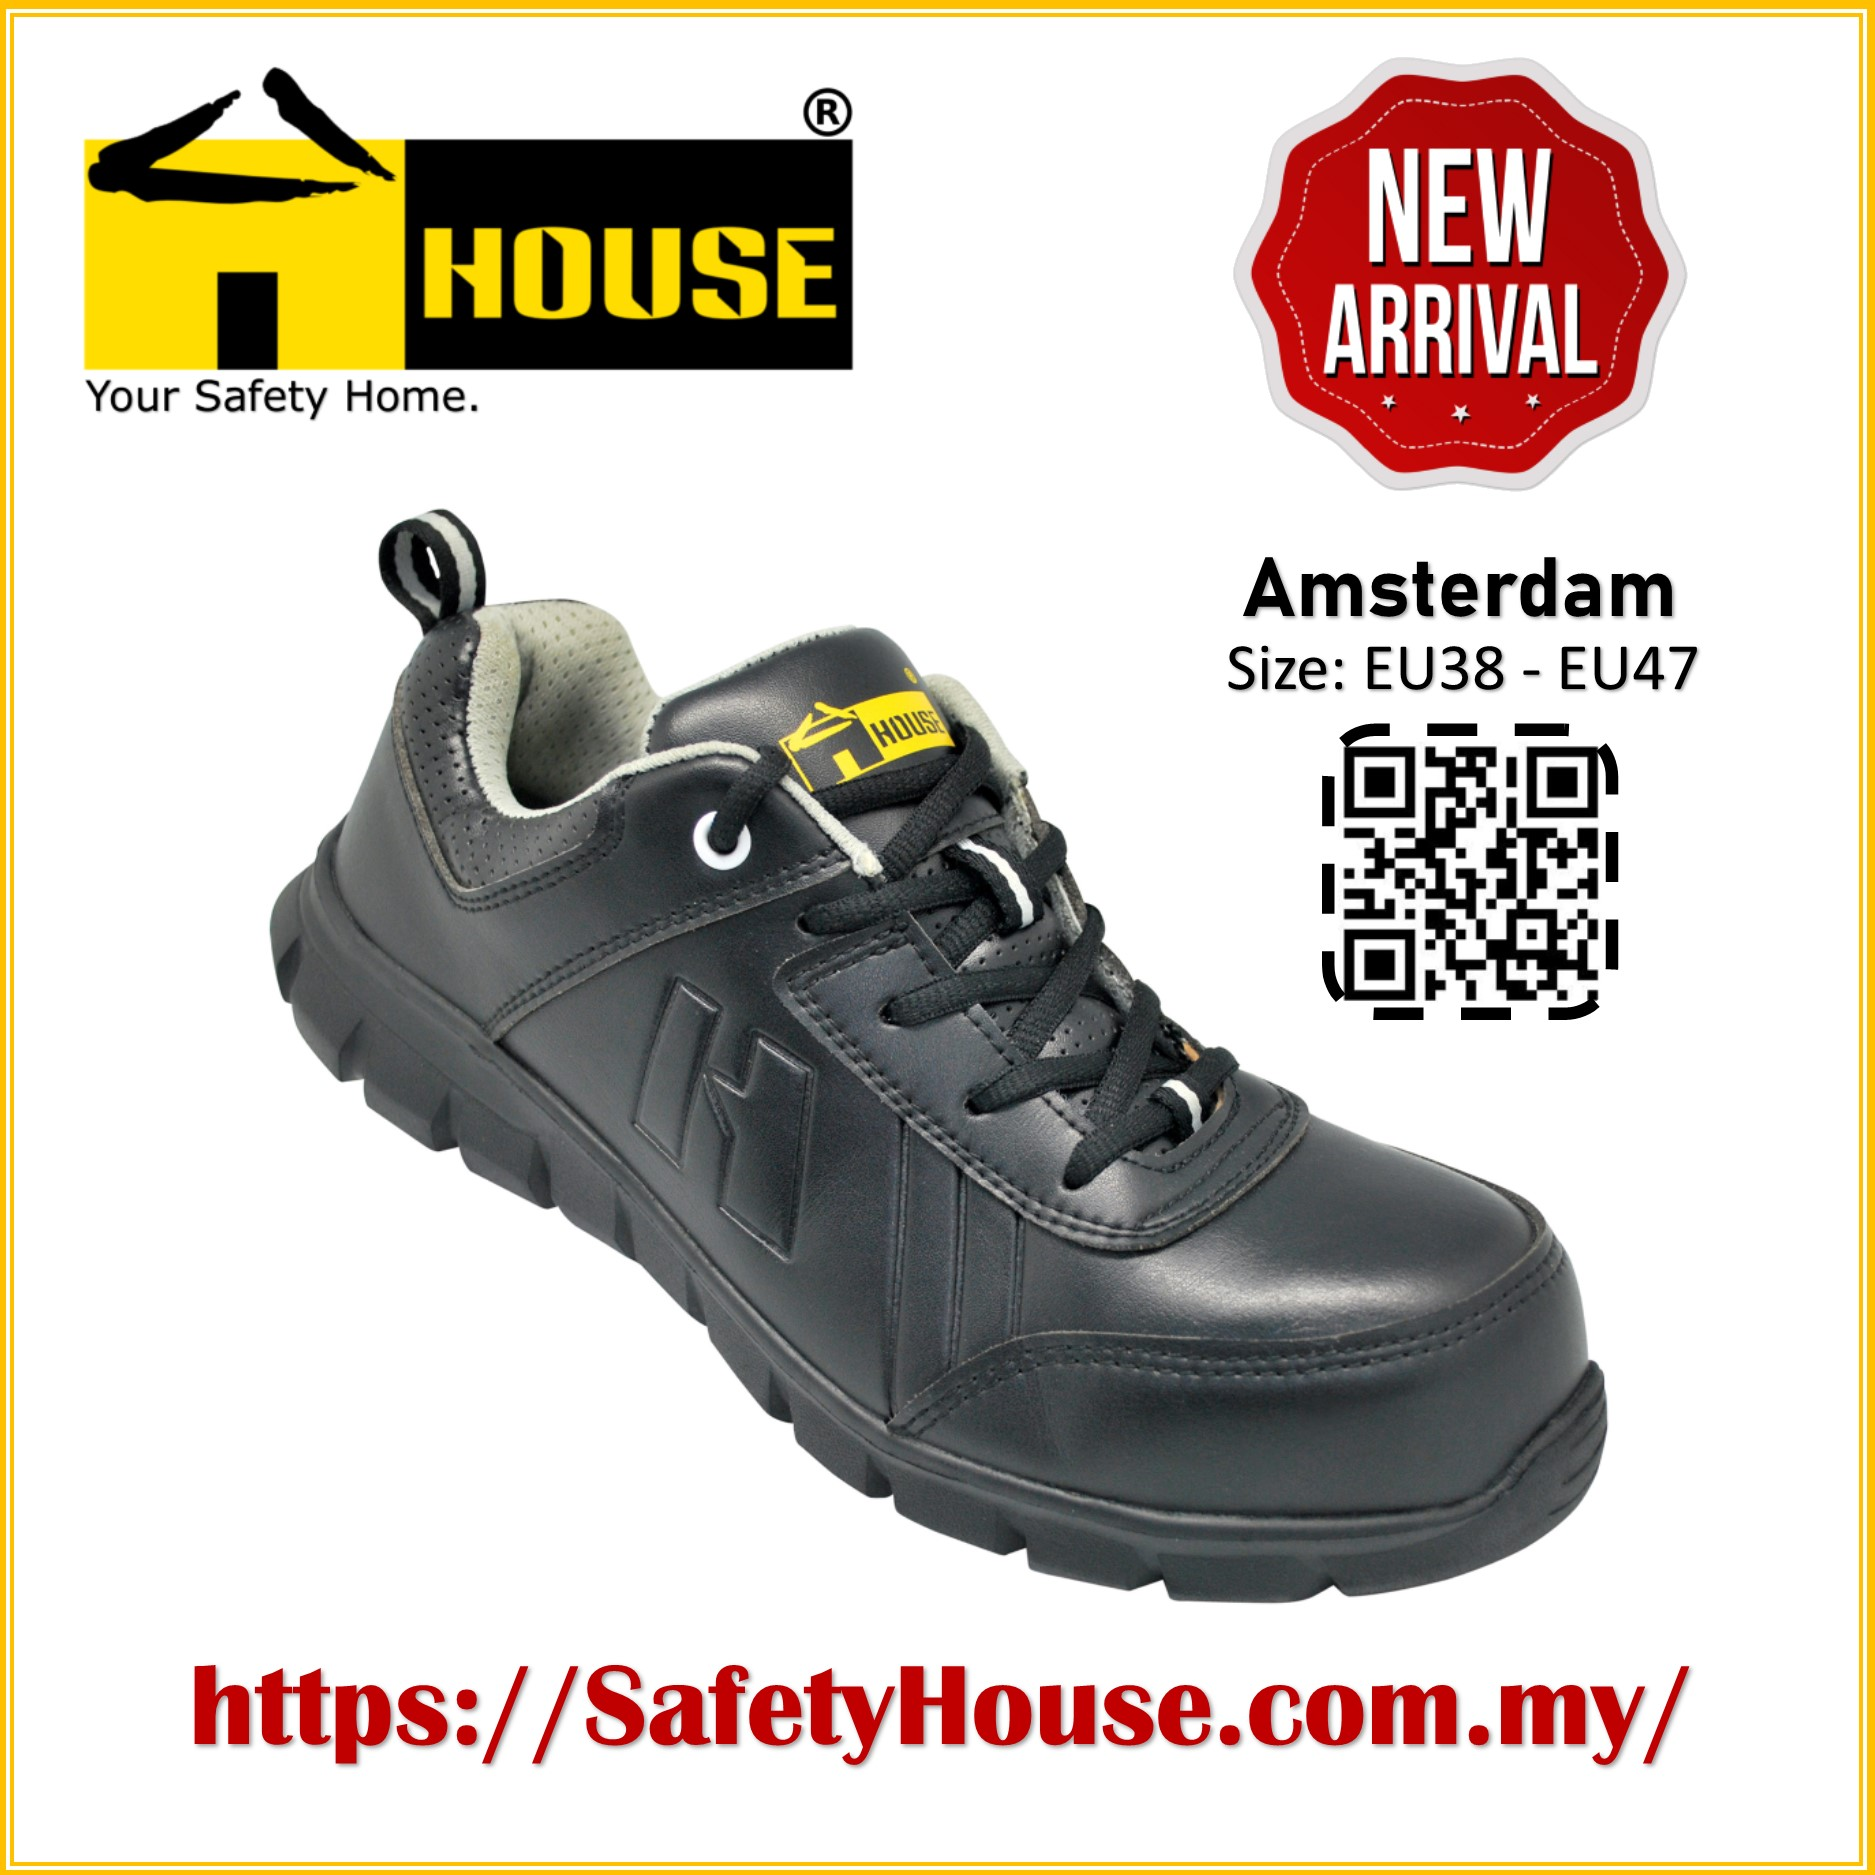 HOUSE AMSTERDAM SAFETY SHOES C/W COMPOSITE TOE CAP & ARAMID MID SOLE Image